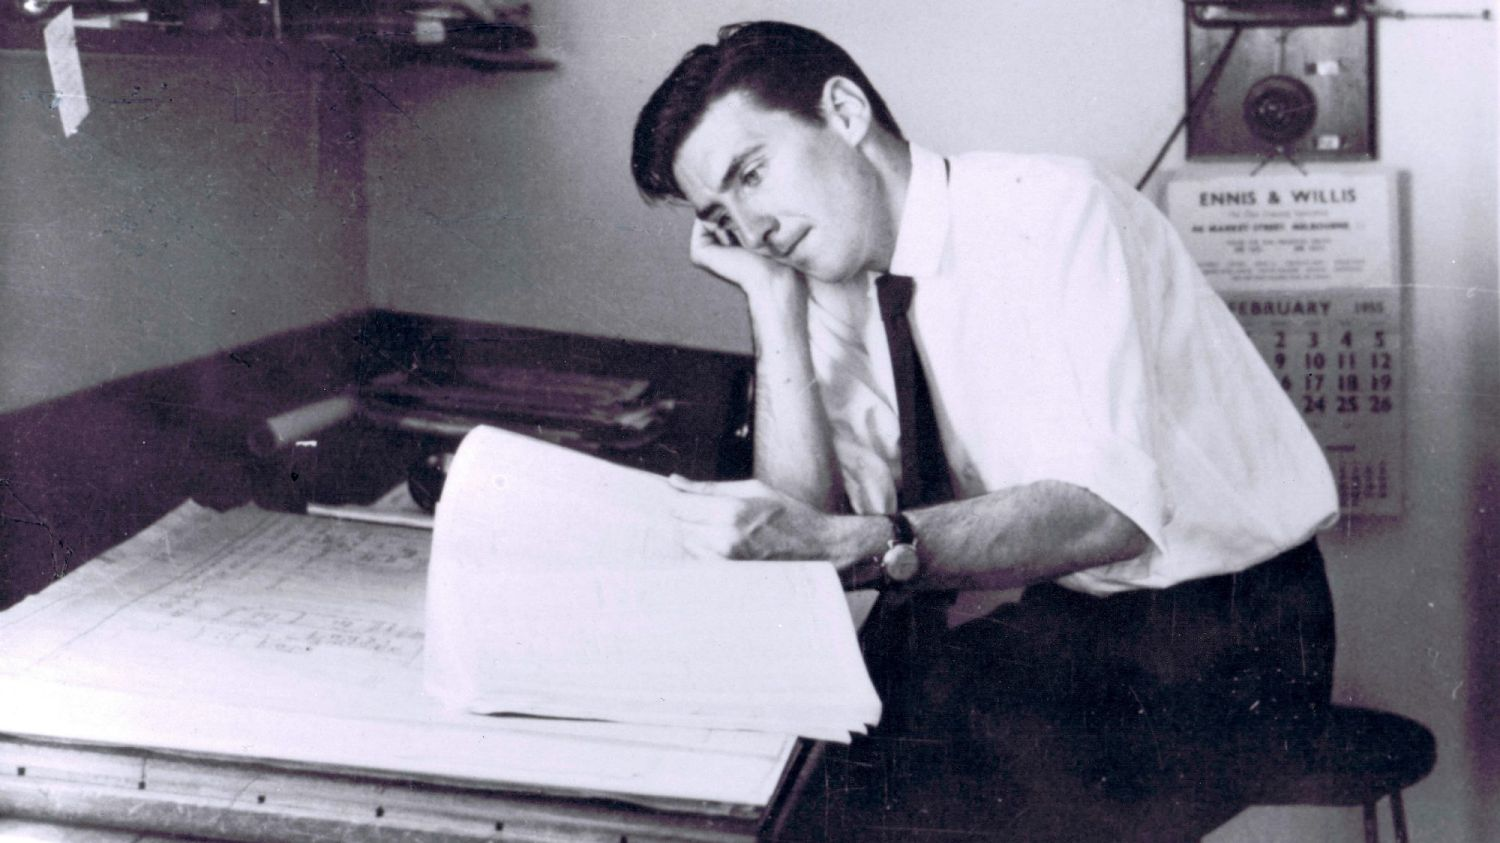 Peter McIntyre at the drawing board in the 1950s.